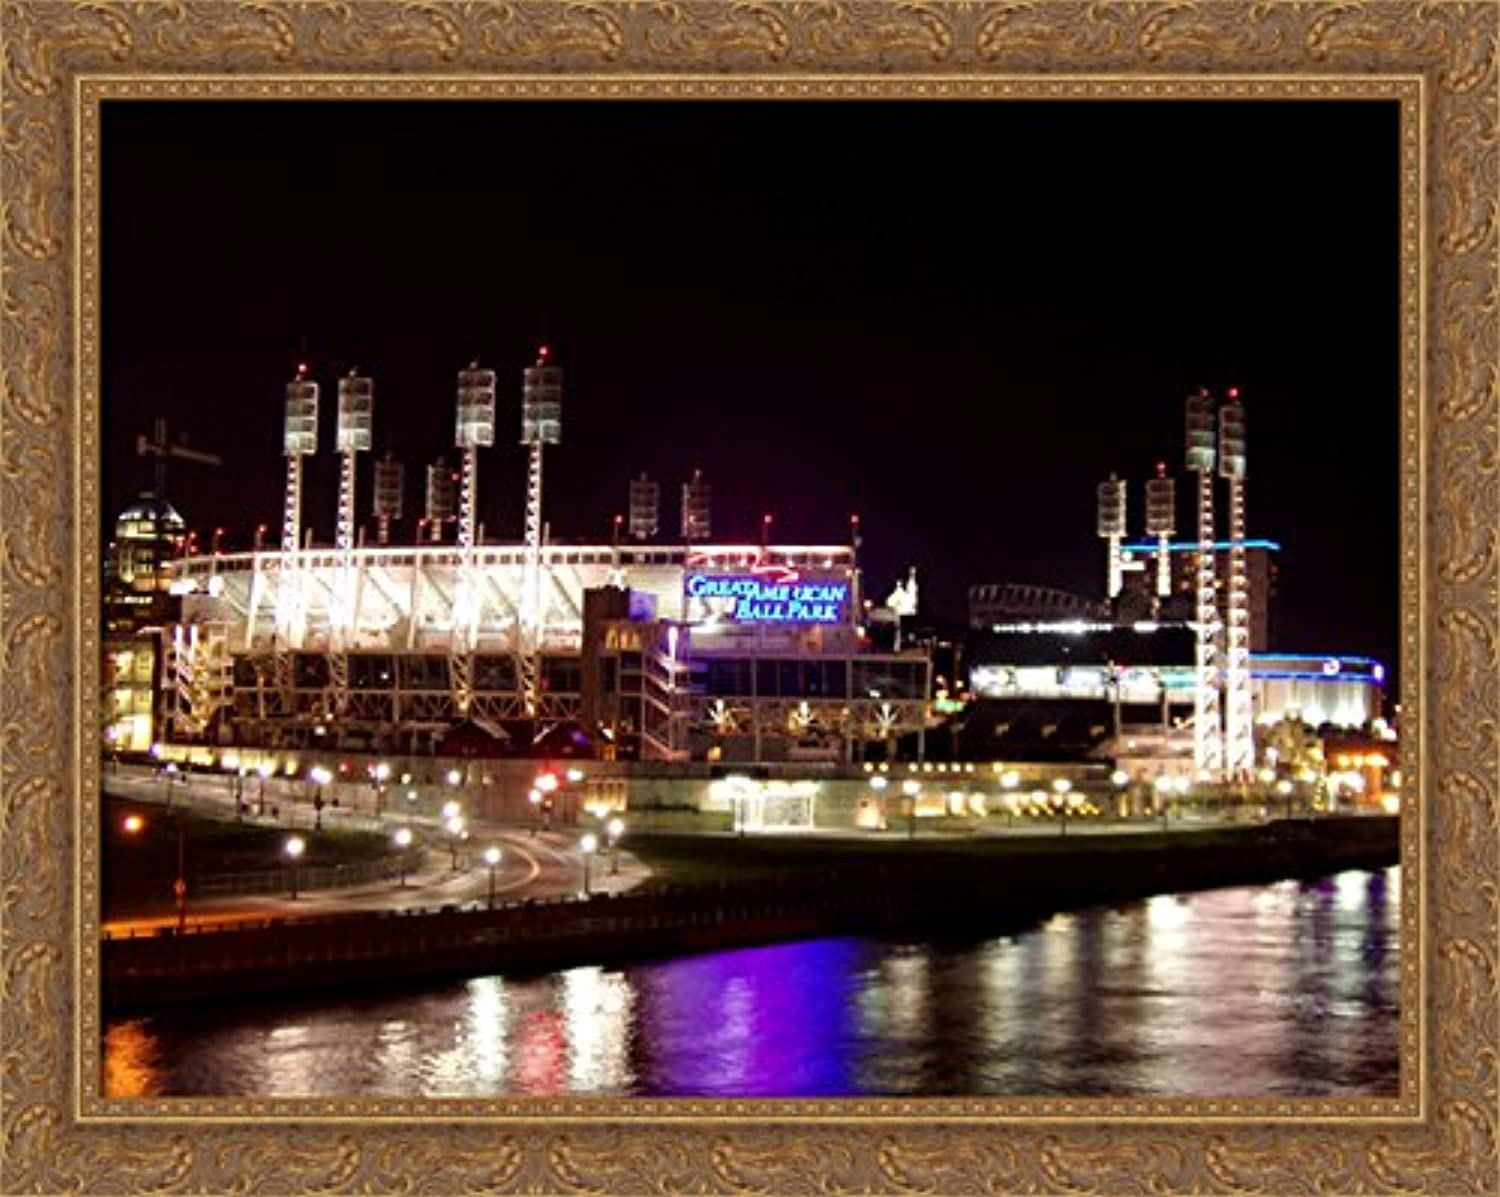 Great American Ballpark 36x28 Large gold Ornate Wood Framed Canvas ArtHome of the Cincinnati Reds